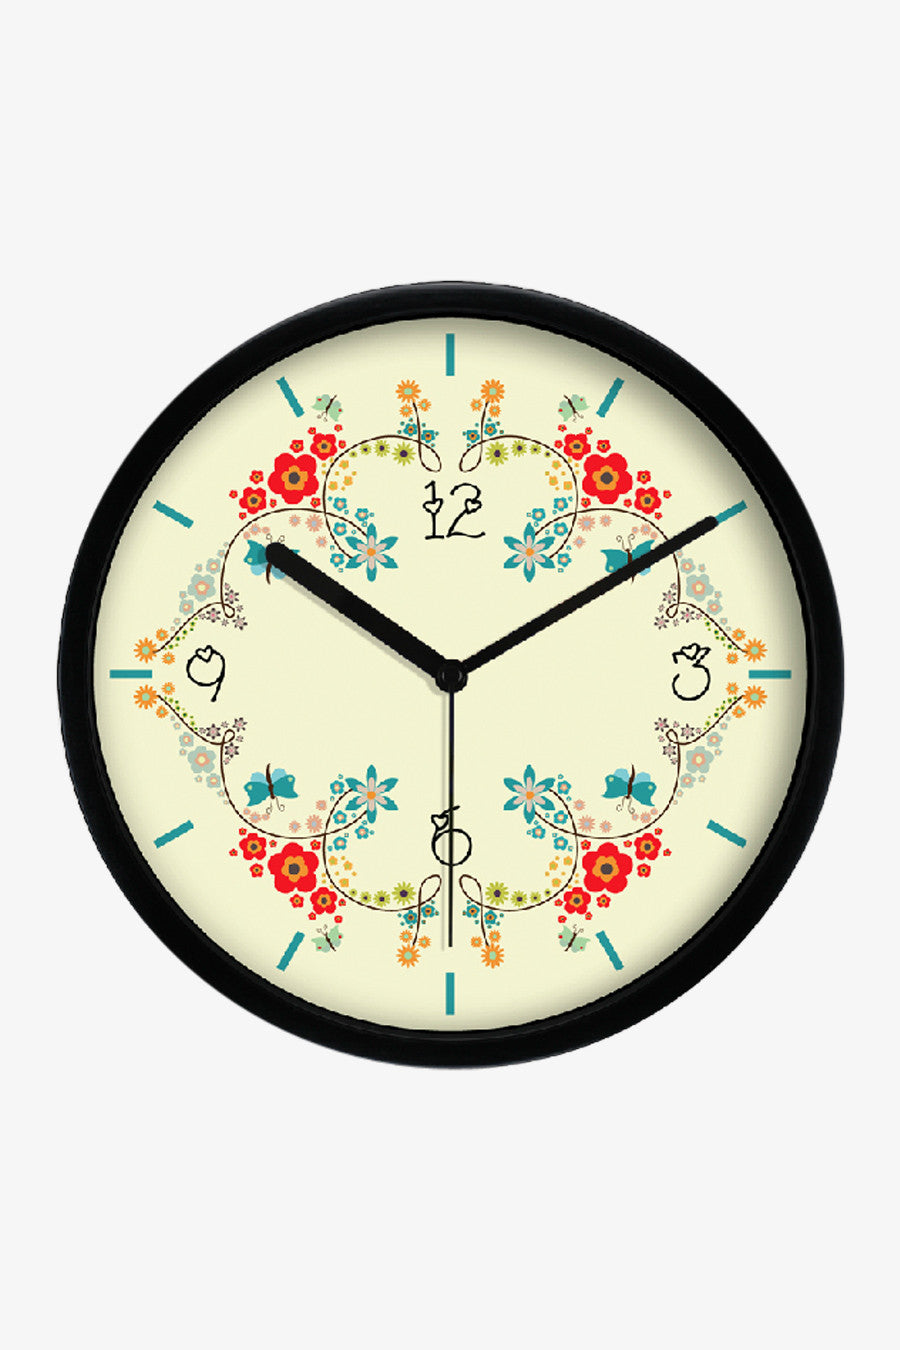 Floral Art Wall Clock In Black